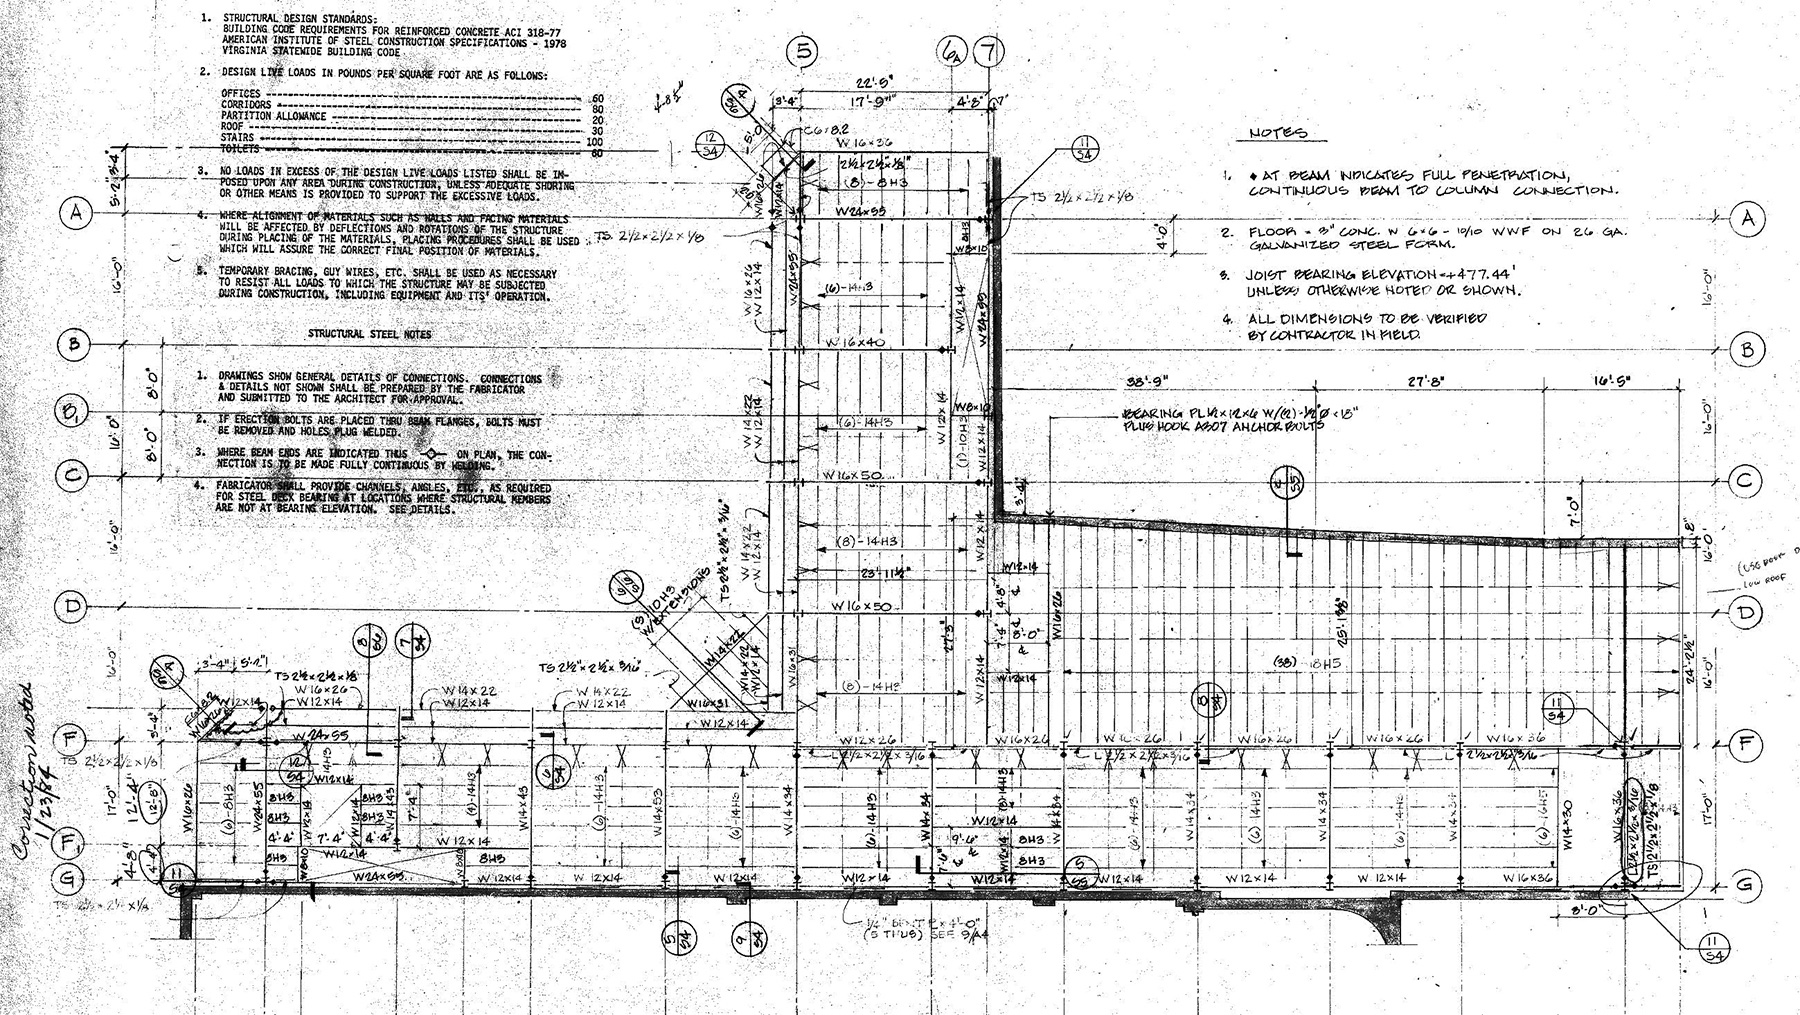 EXISTING STRUCTURAL DRAWINGS